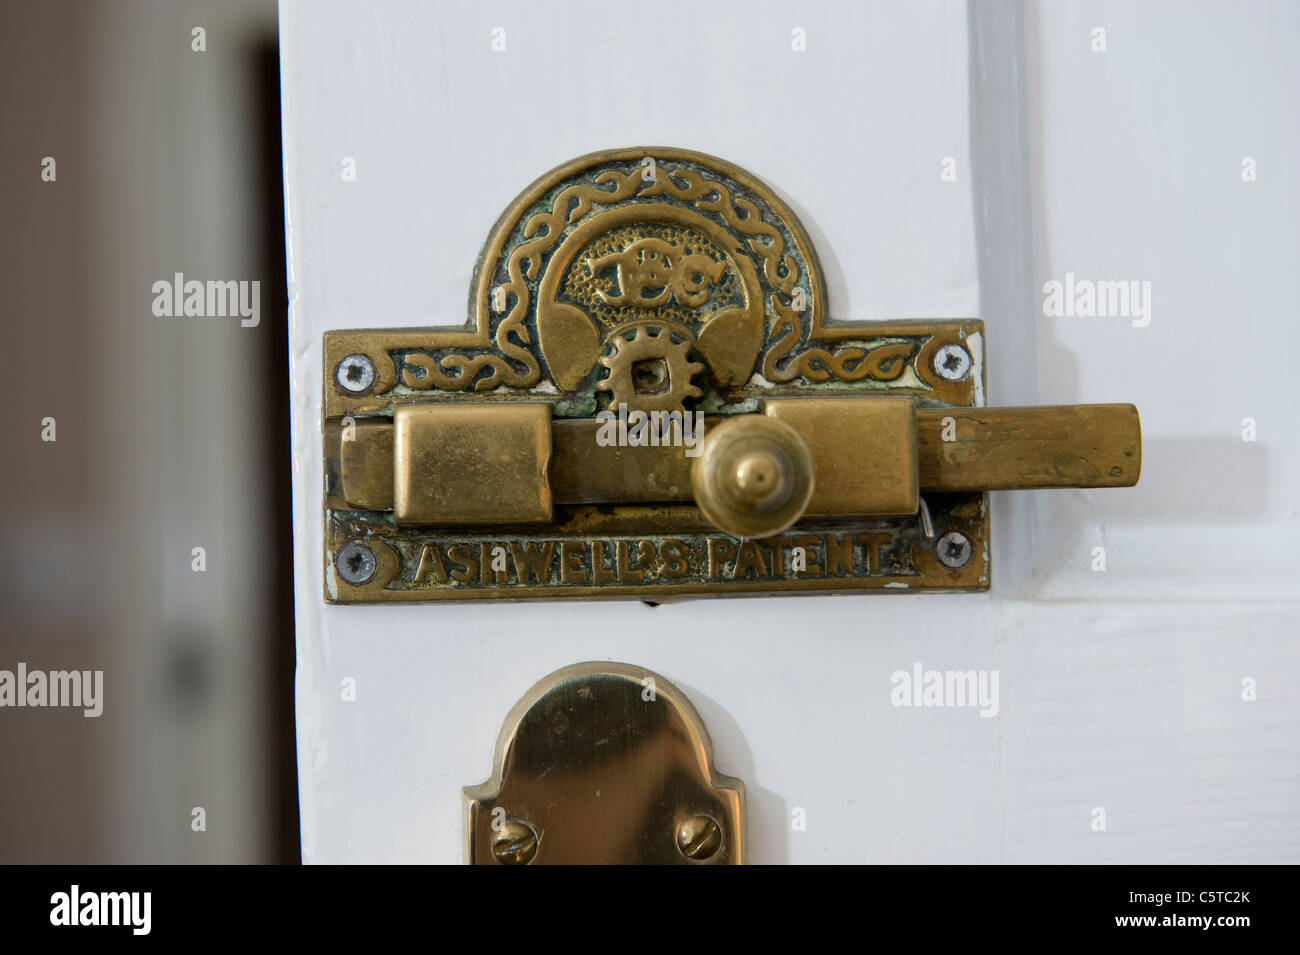 "Bathroom Door Signs Vacant antique brass bathroom door lock and ""vacant"" sign stock photo"